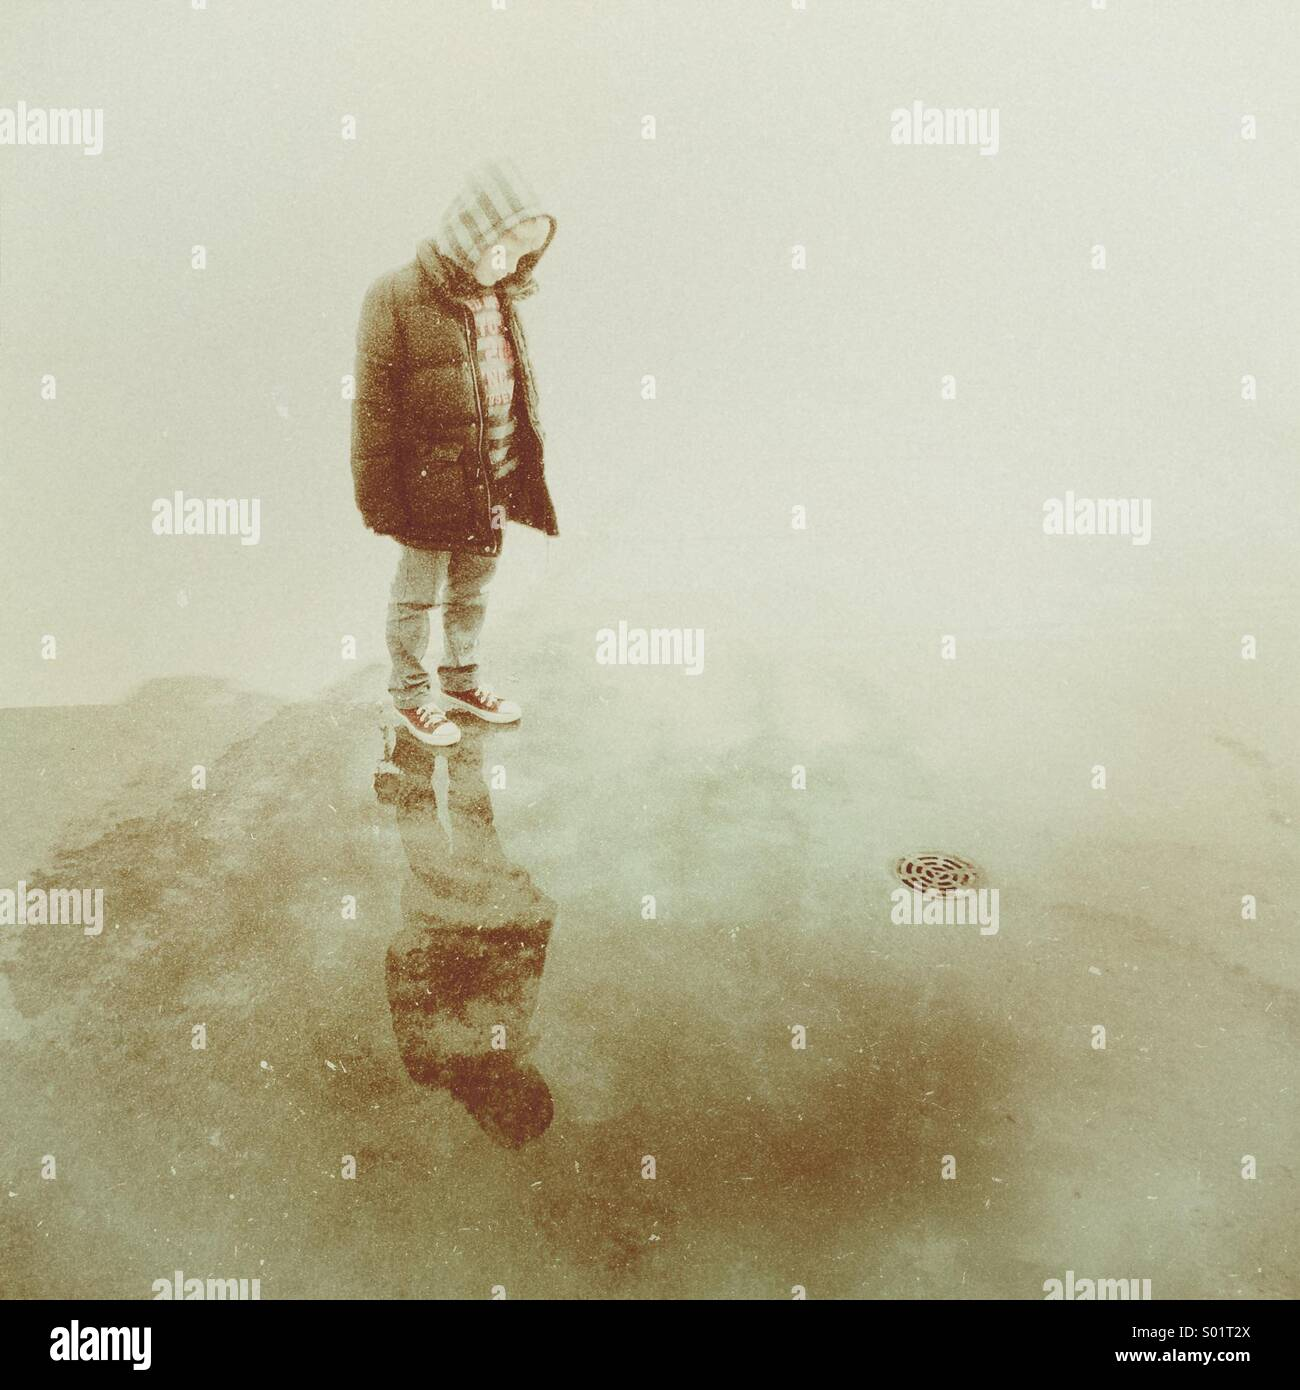 Young boy stood in a puddle looking at his reflection before the water goes down the nearby drain - Stock Image